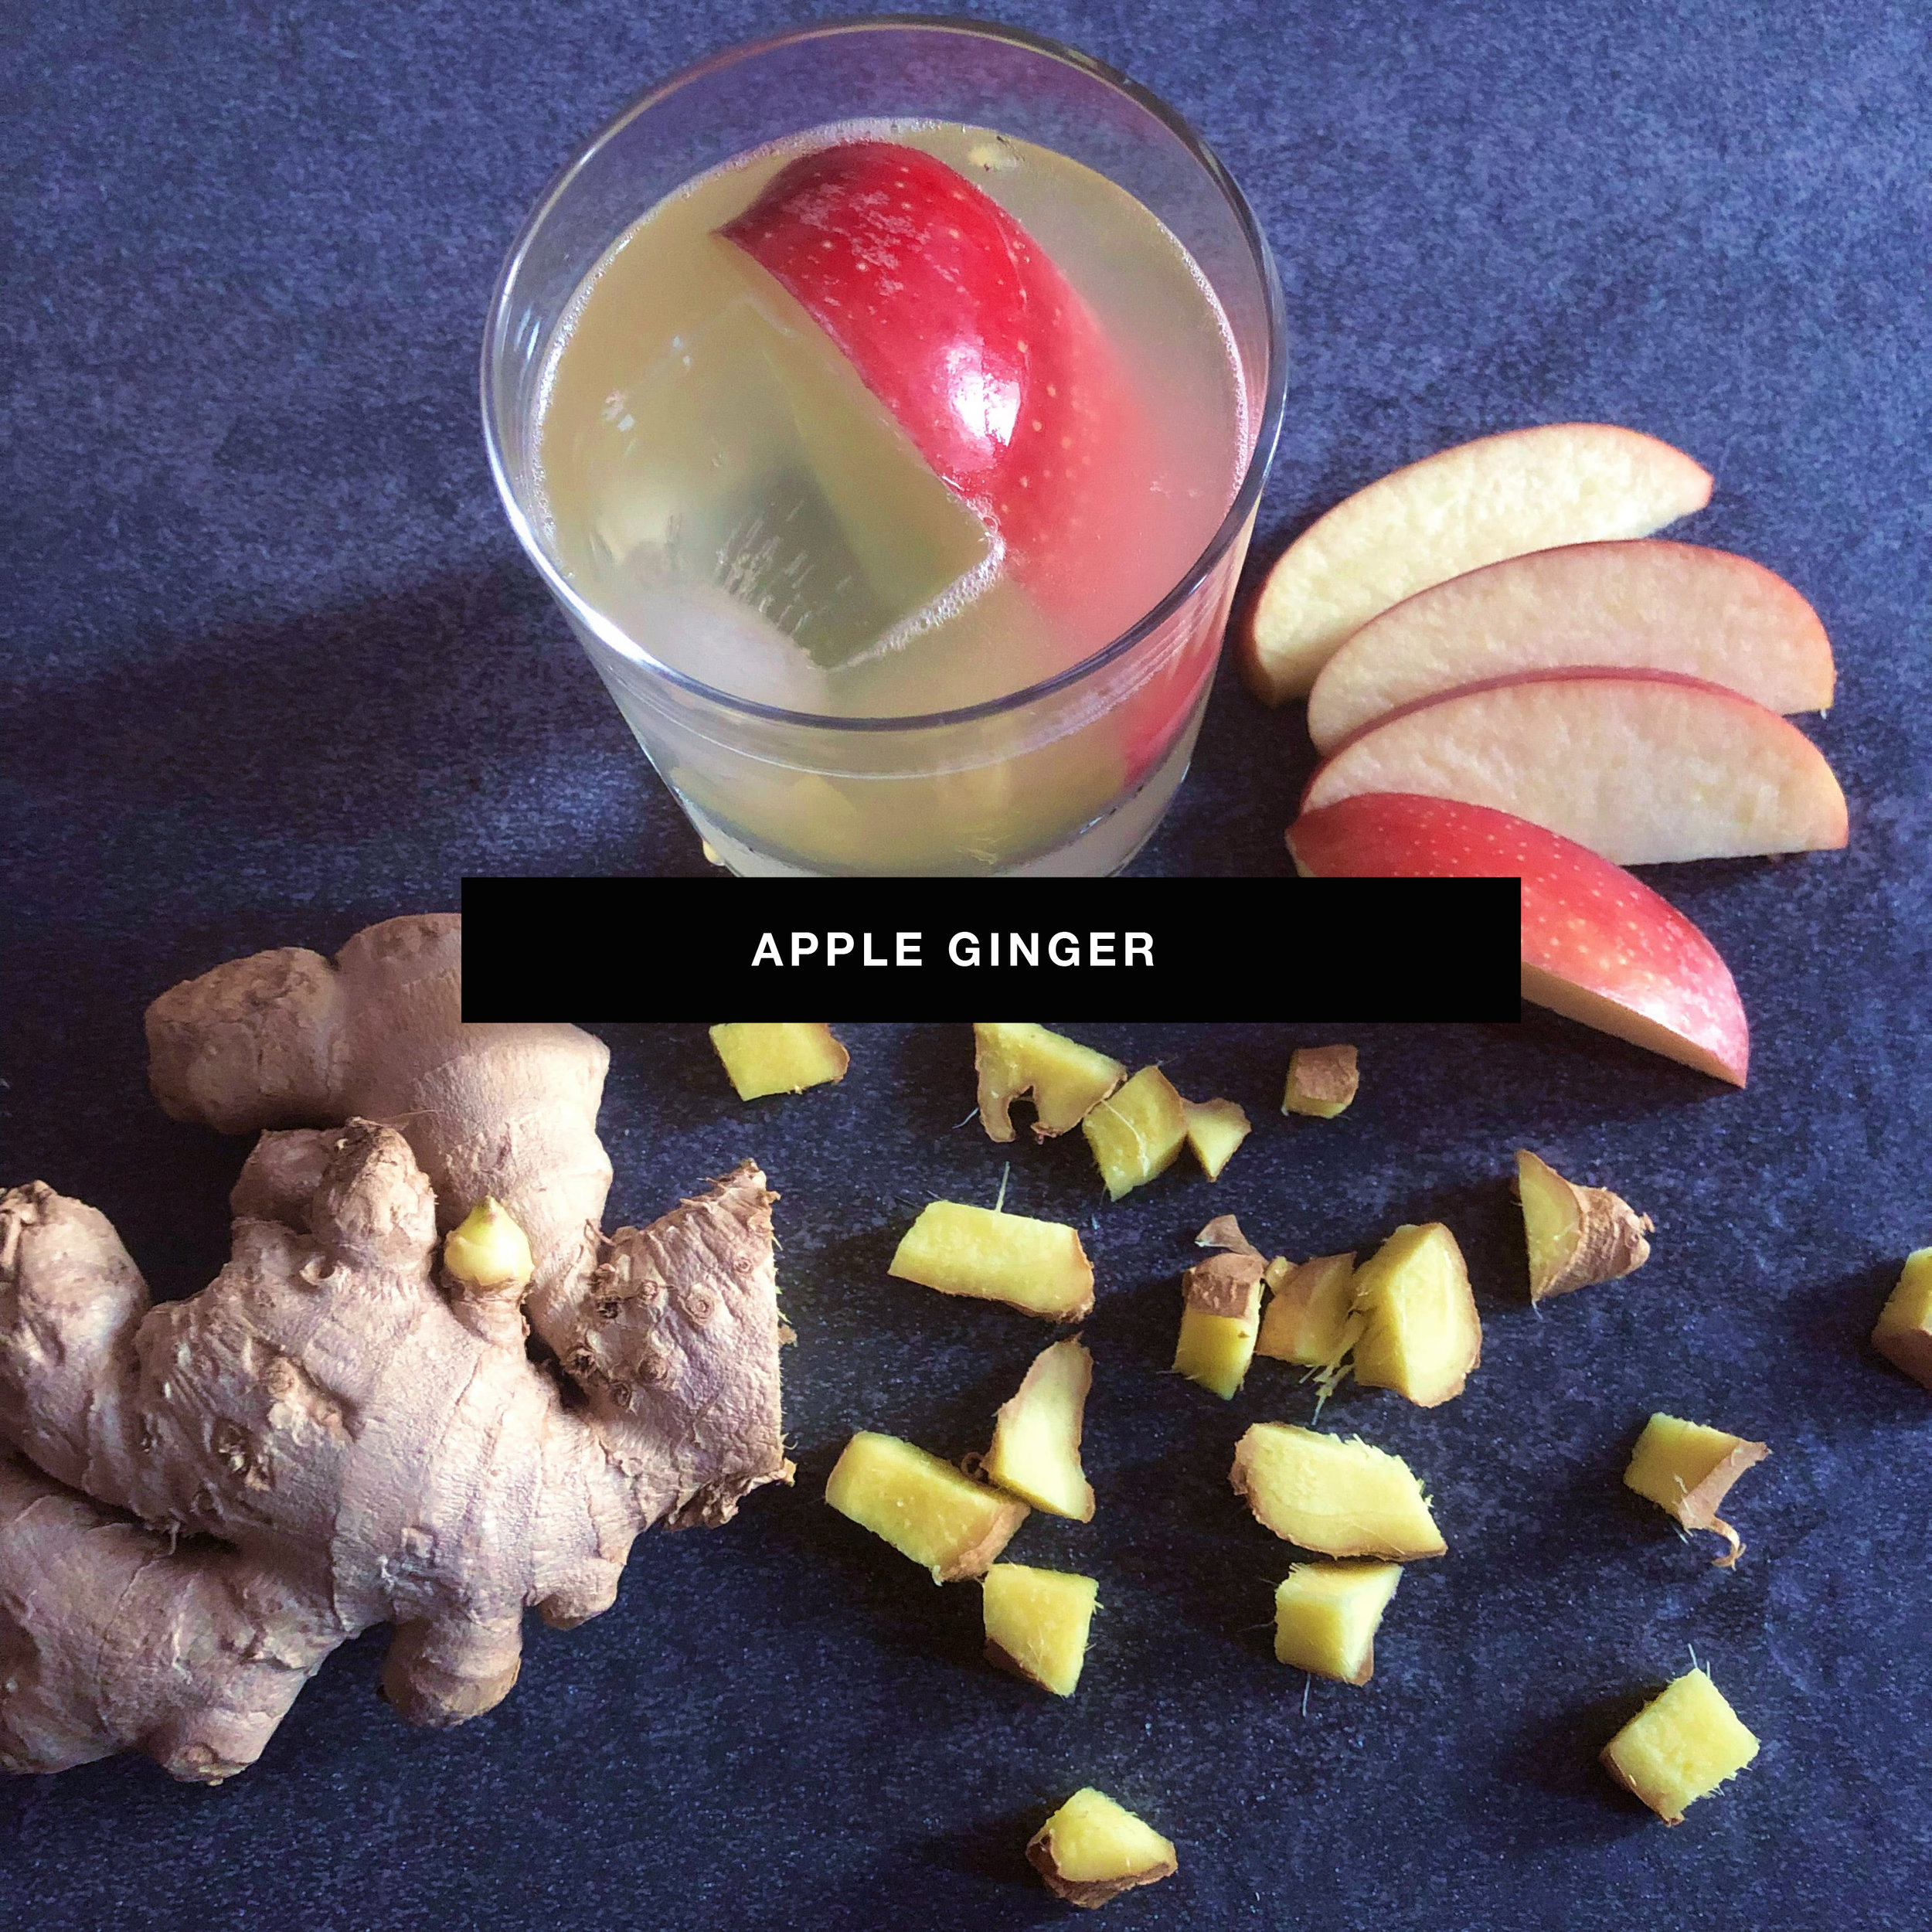 APPLE-GINGER.jpg